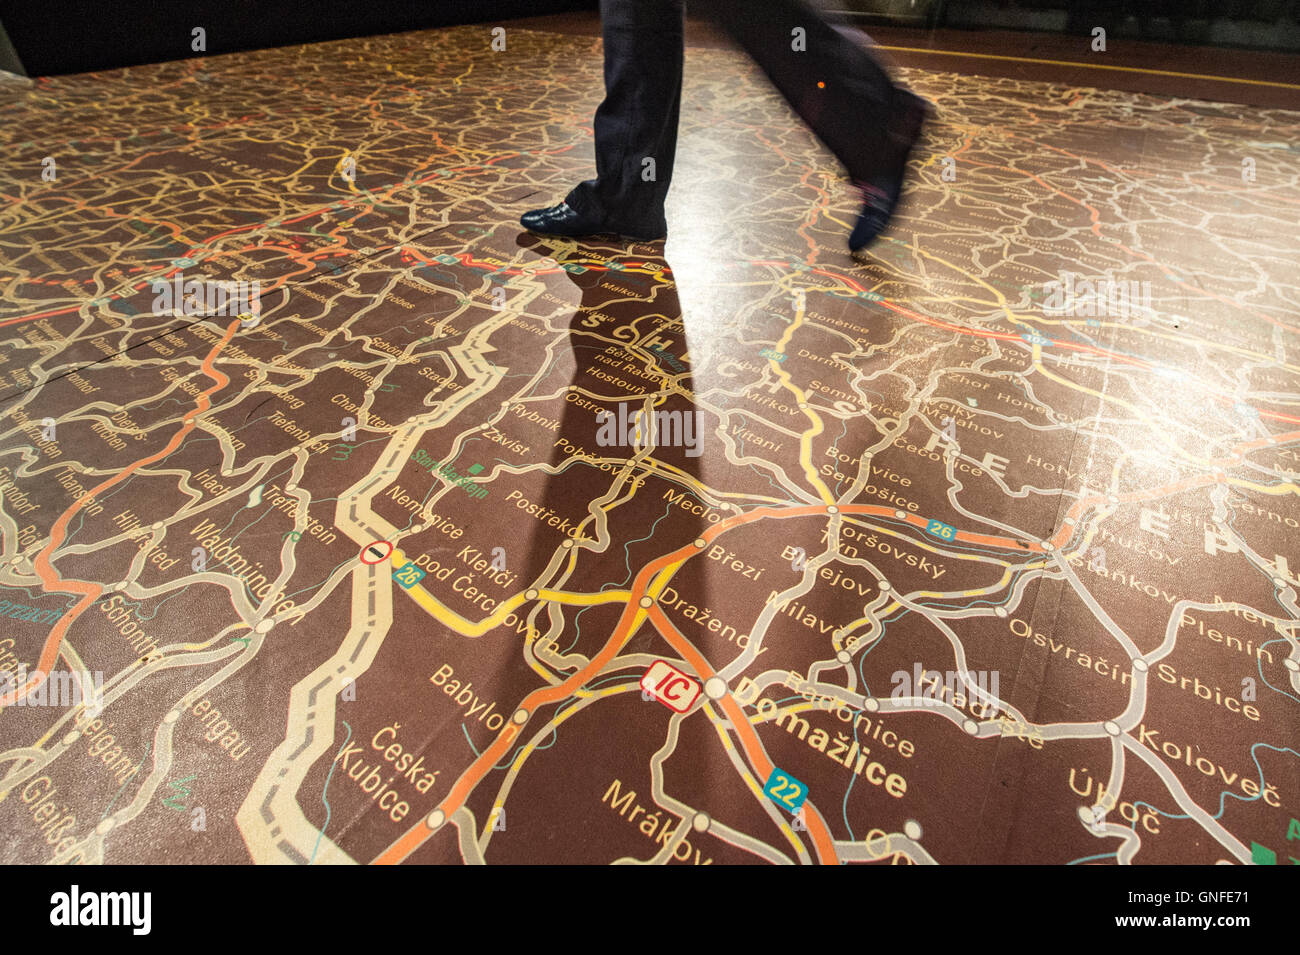 Schonsee, Germany. 10th Aug, 2016. A woman walks on a giant map on the floor of the Bavarian-Bohemian culture centre - Stock Image